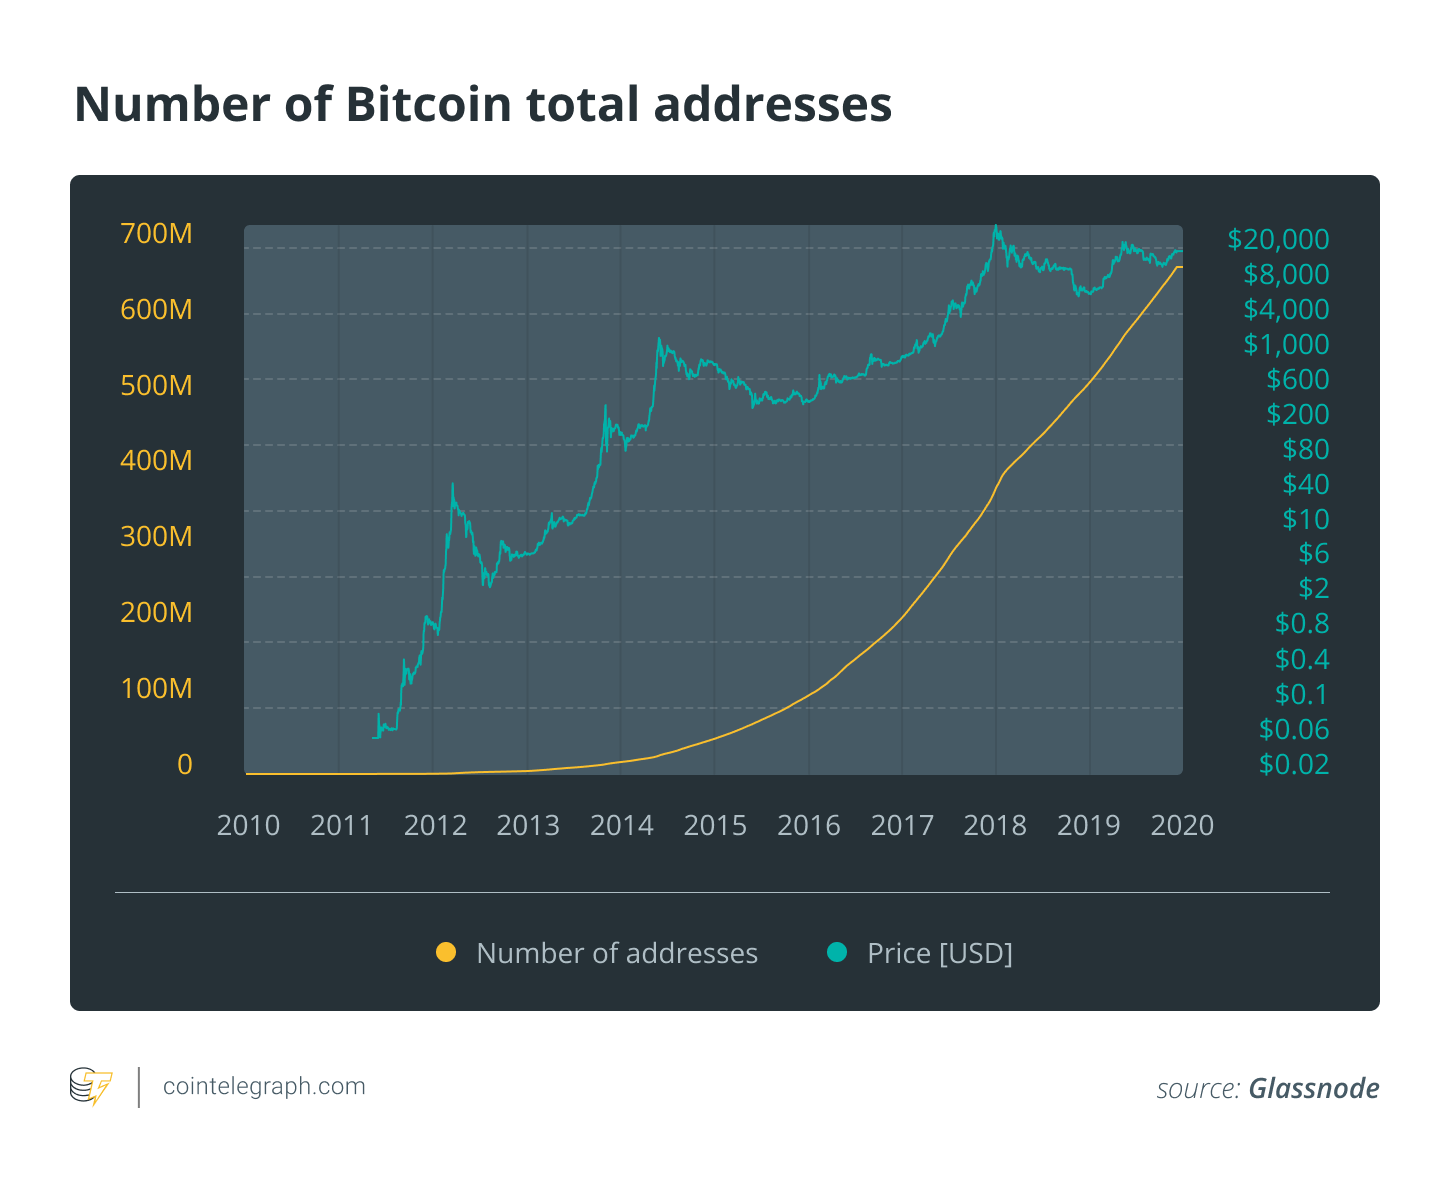 Number of Bitcoin total addresses